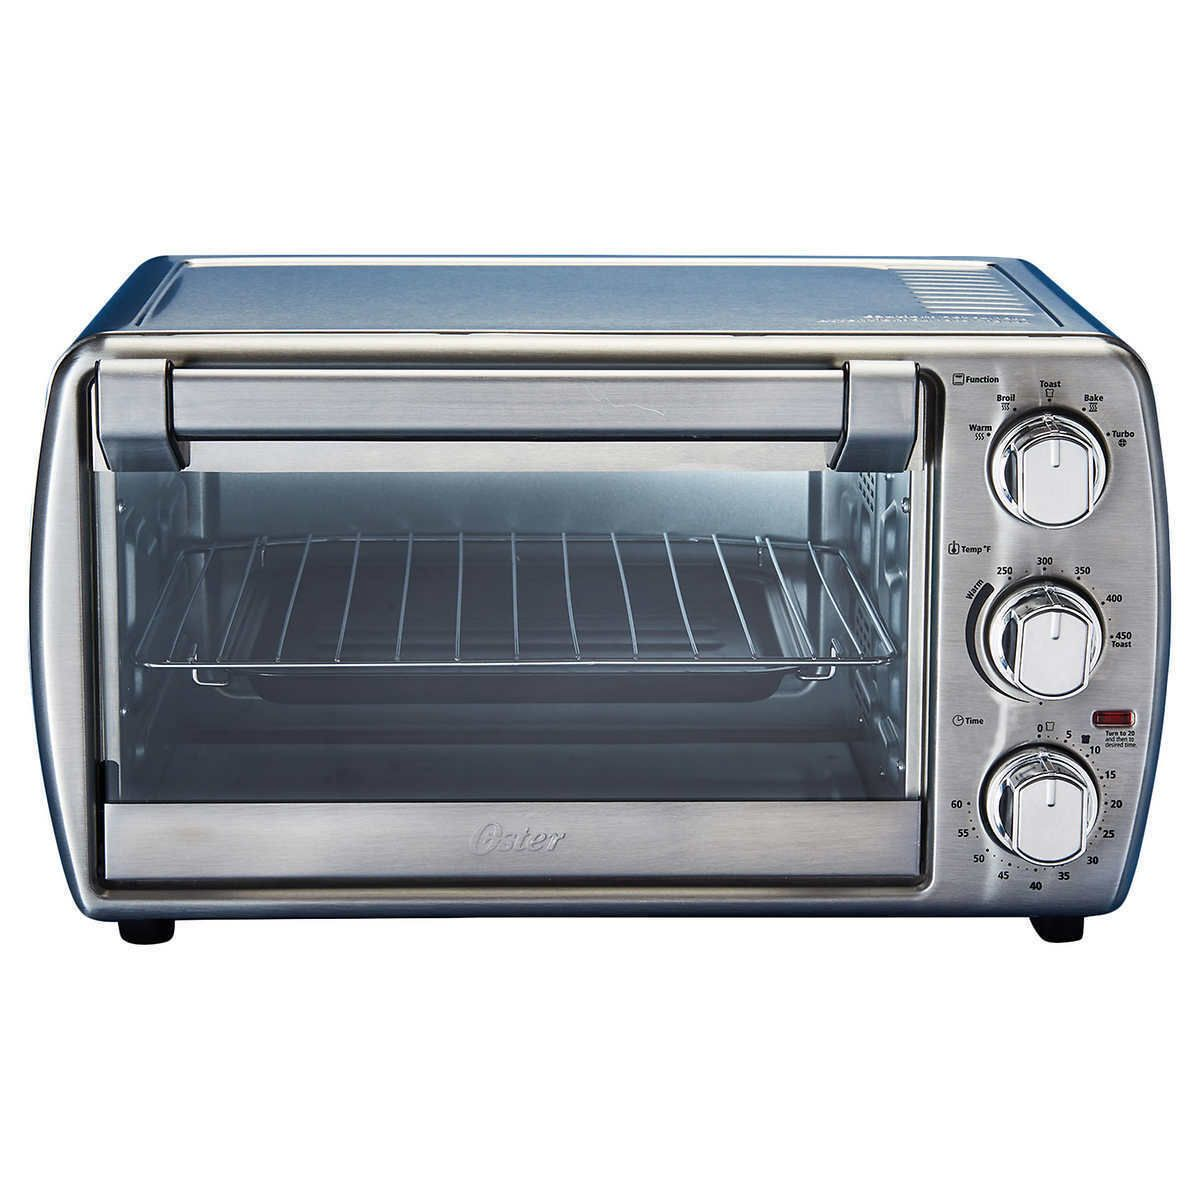 New Oster 6 Slice Turbo Convection Countertop Oven Brushed Stainless Tssttvcg04 Ovens Ideas Of Ovens